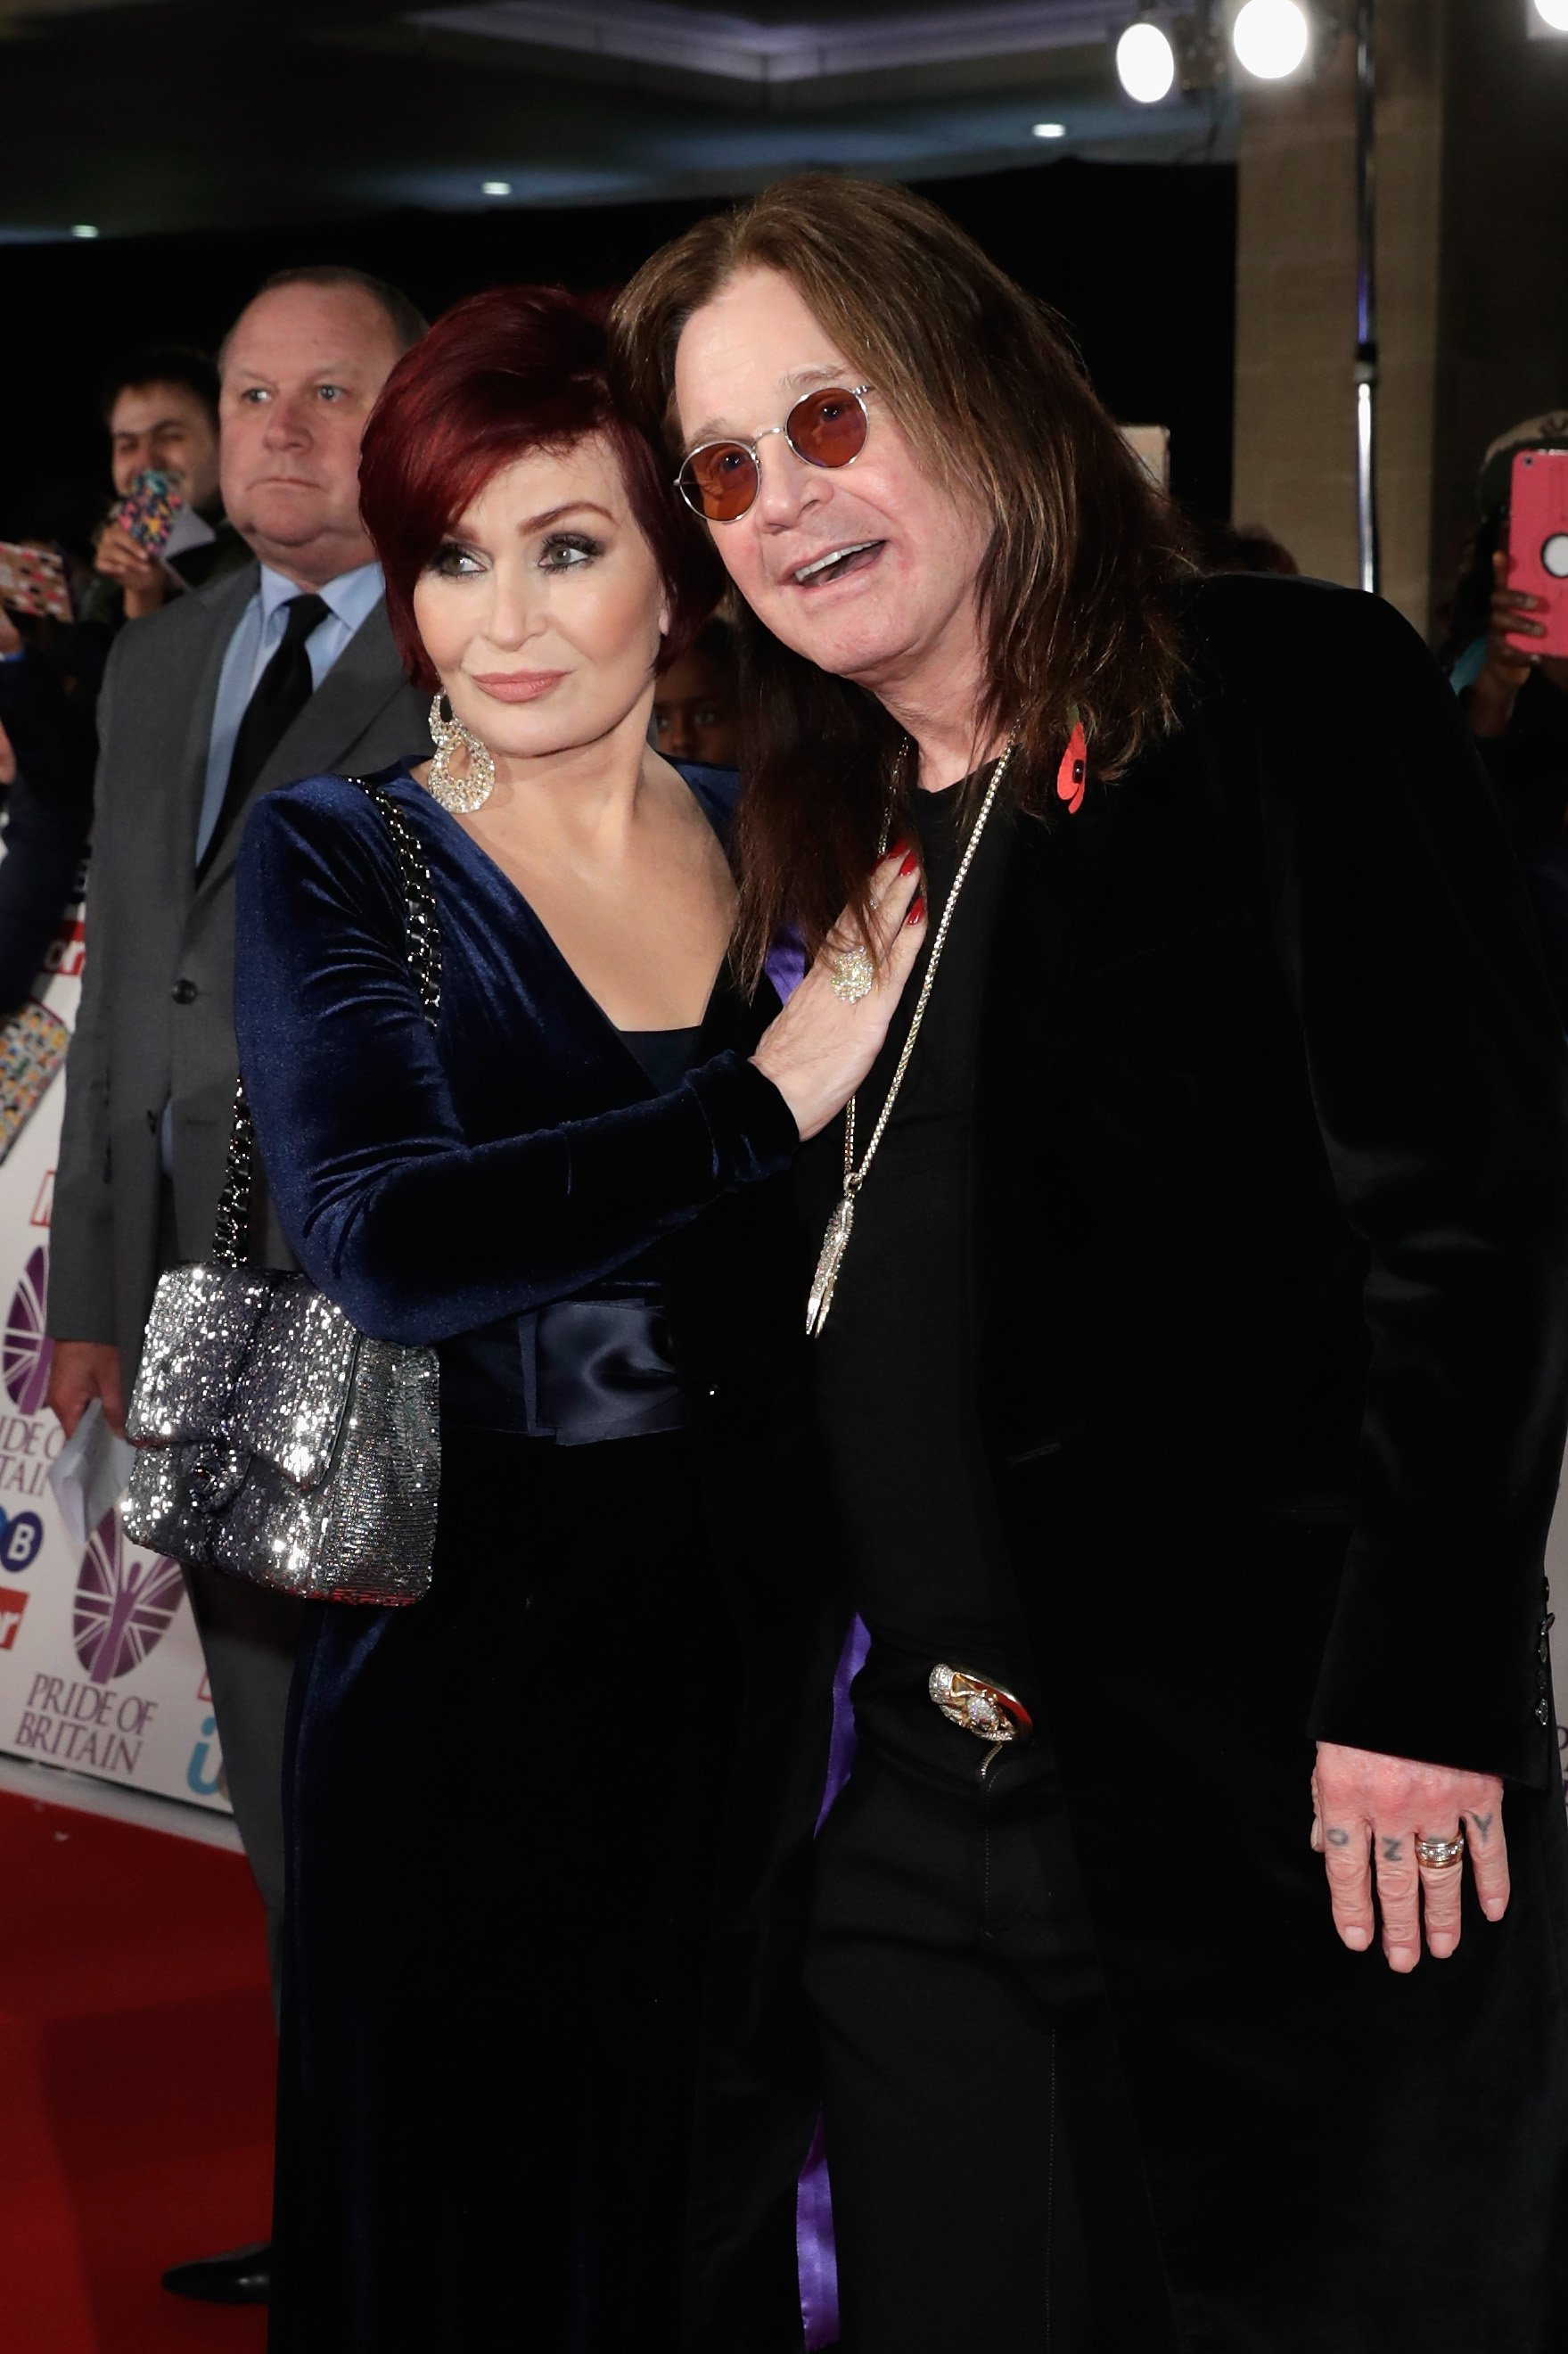 Sharon Osbourne and Ozzy Osbourne attend the Pride Of Britain Awards at Grosvenor House, on October 30, 2017, in London, England. | Source: Getty Images.